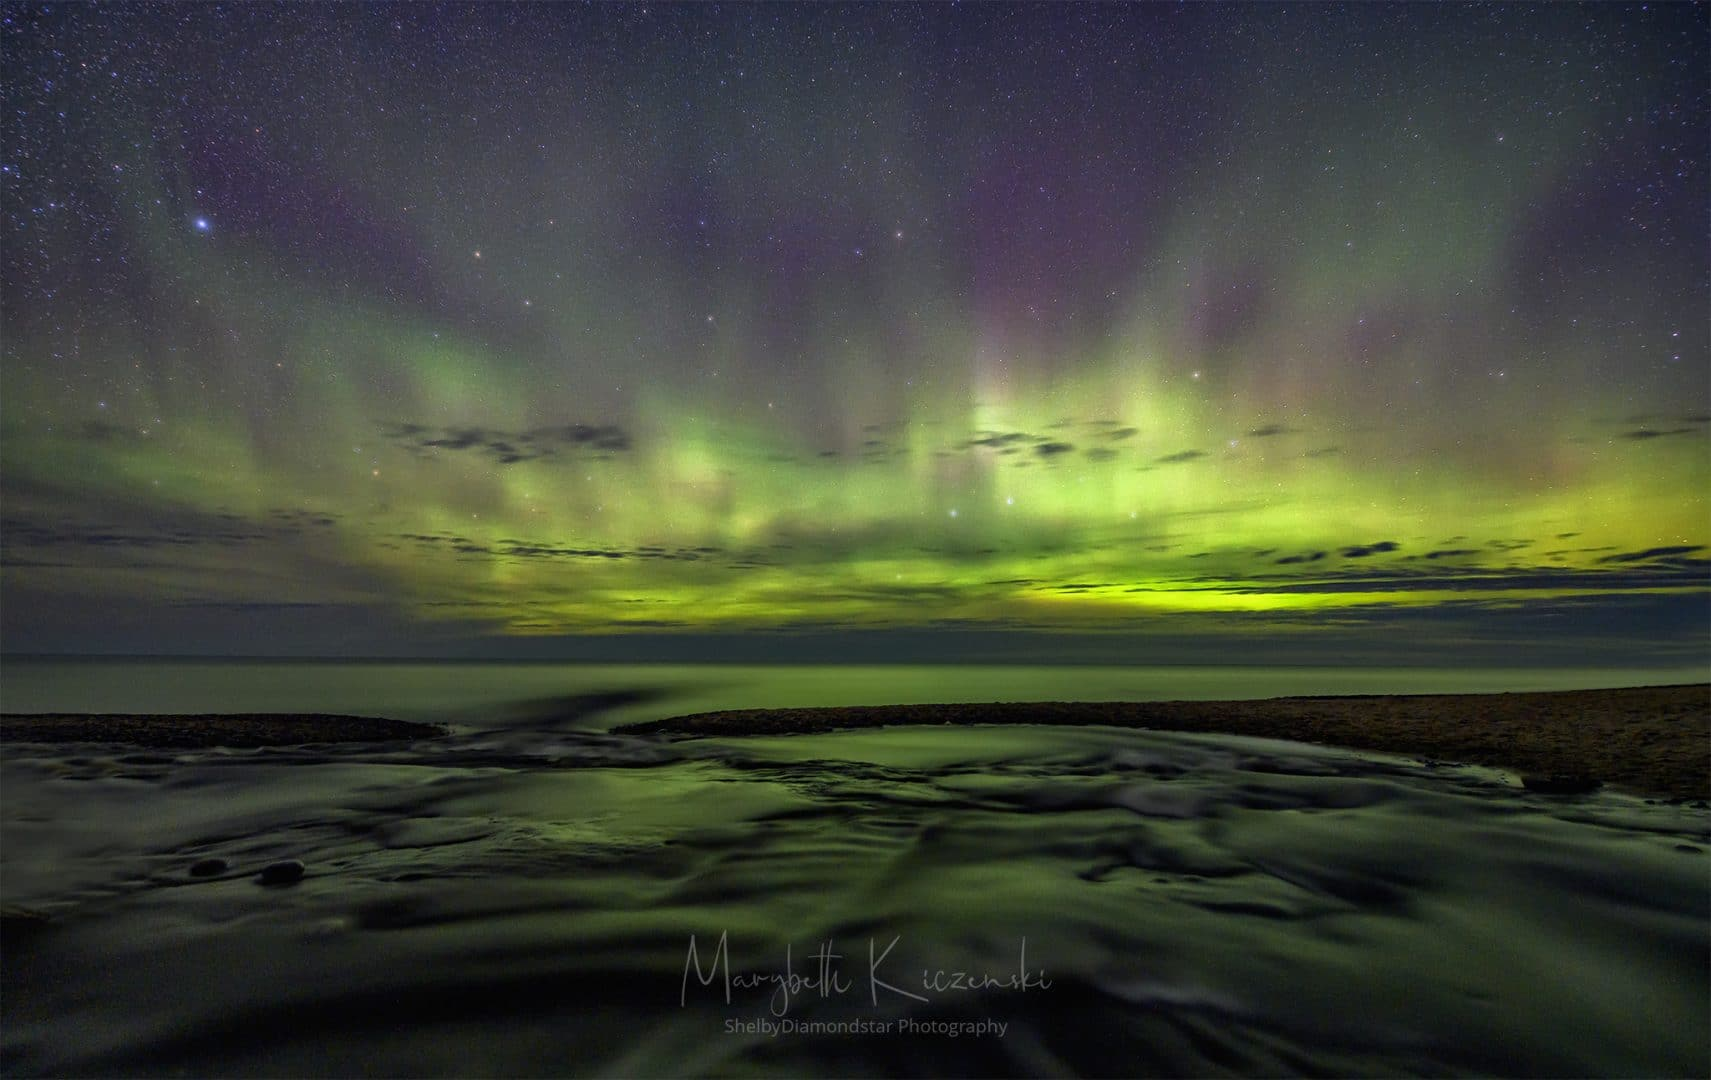 Labor Day Aurora - A 14mm wide-angle shot of the pulsating Aurora.  It was so intense that it filled the entire frame!  (Nikon Z6 - Nikkor 14-24mm) Photo by MaryBeth Kiczenski.